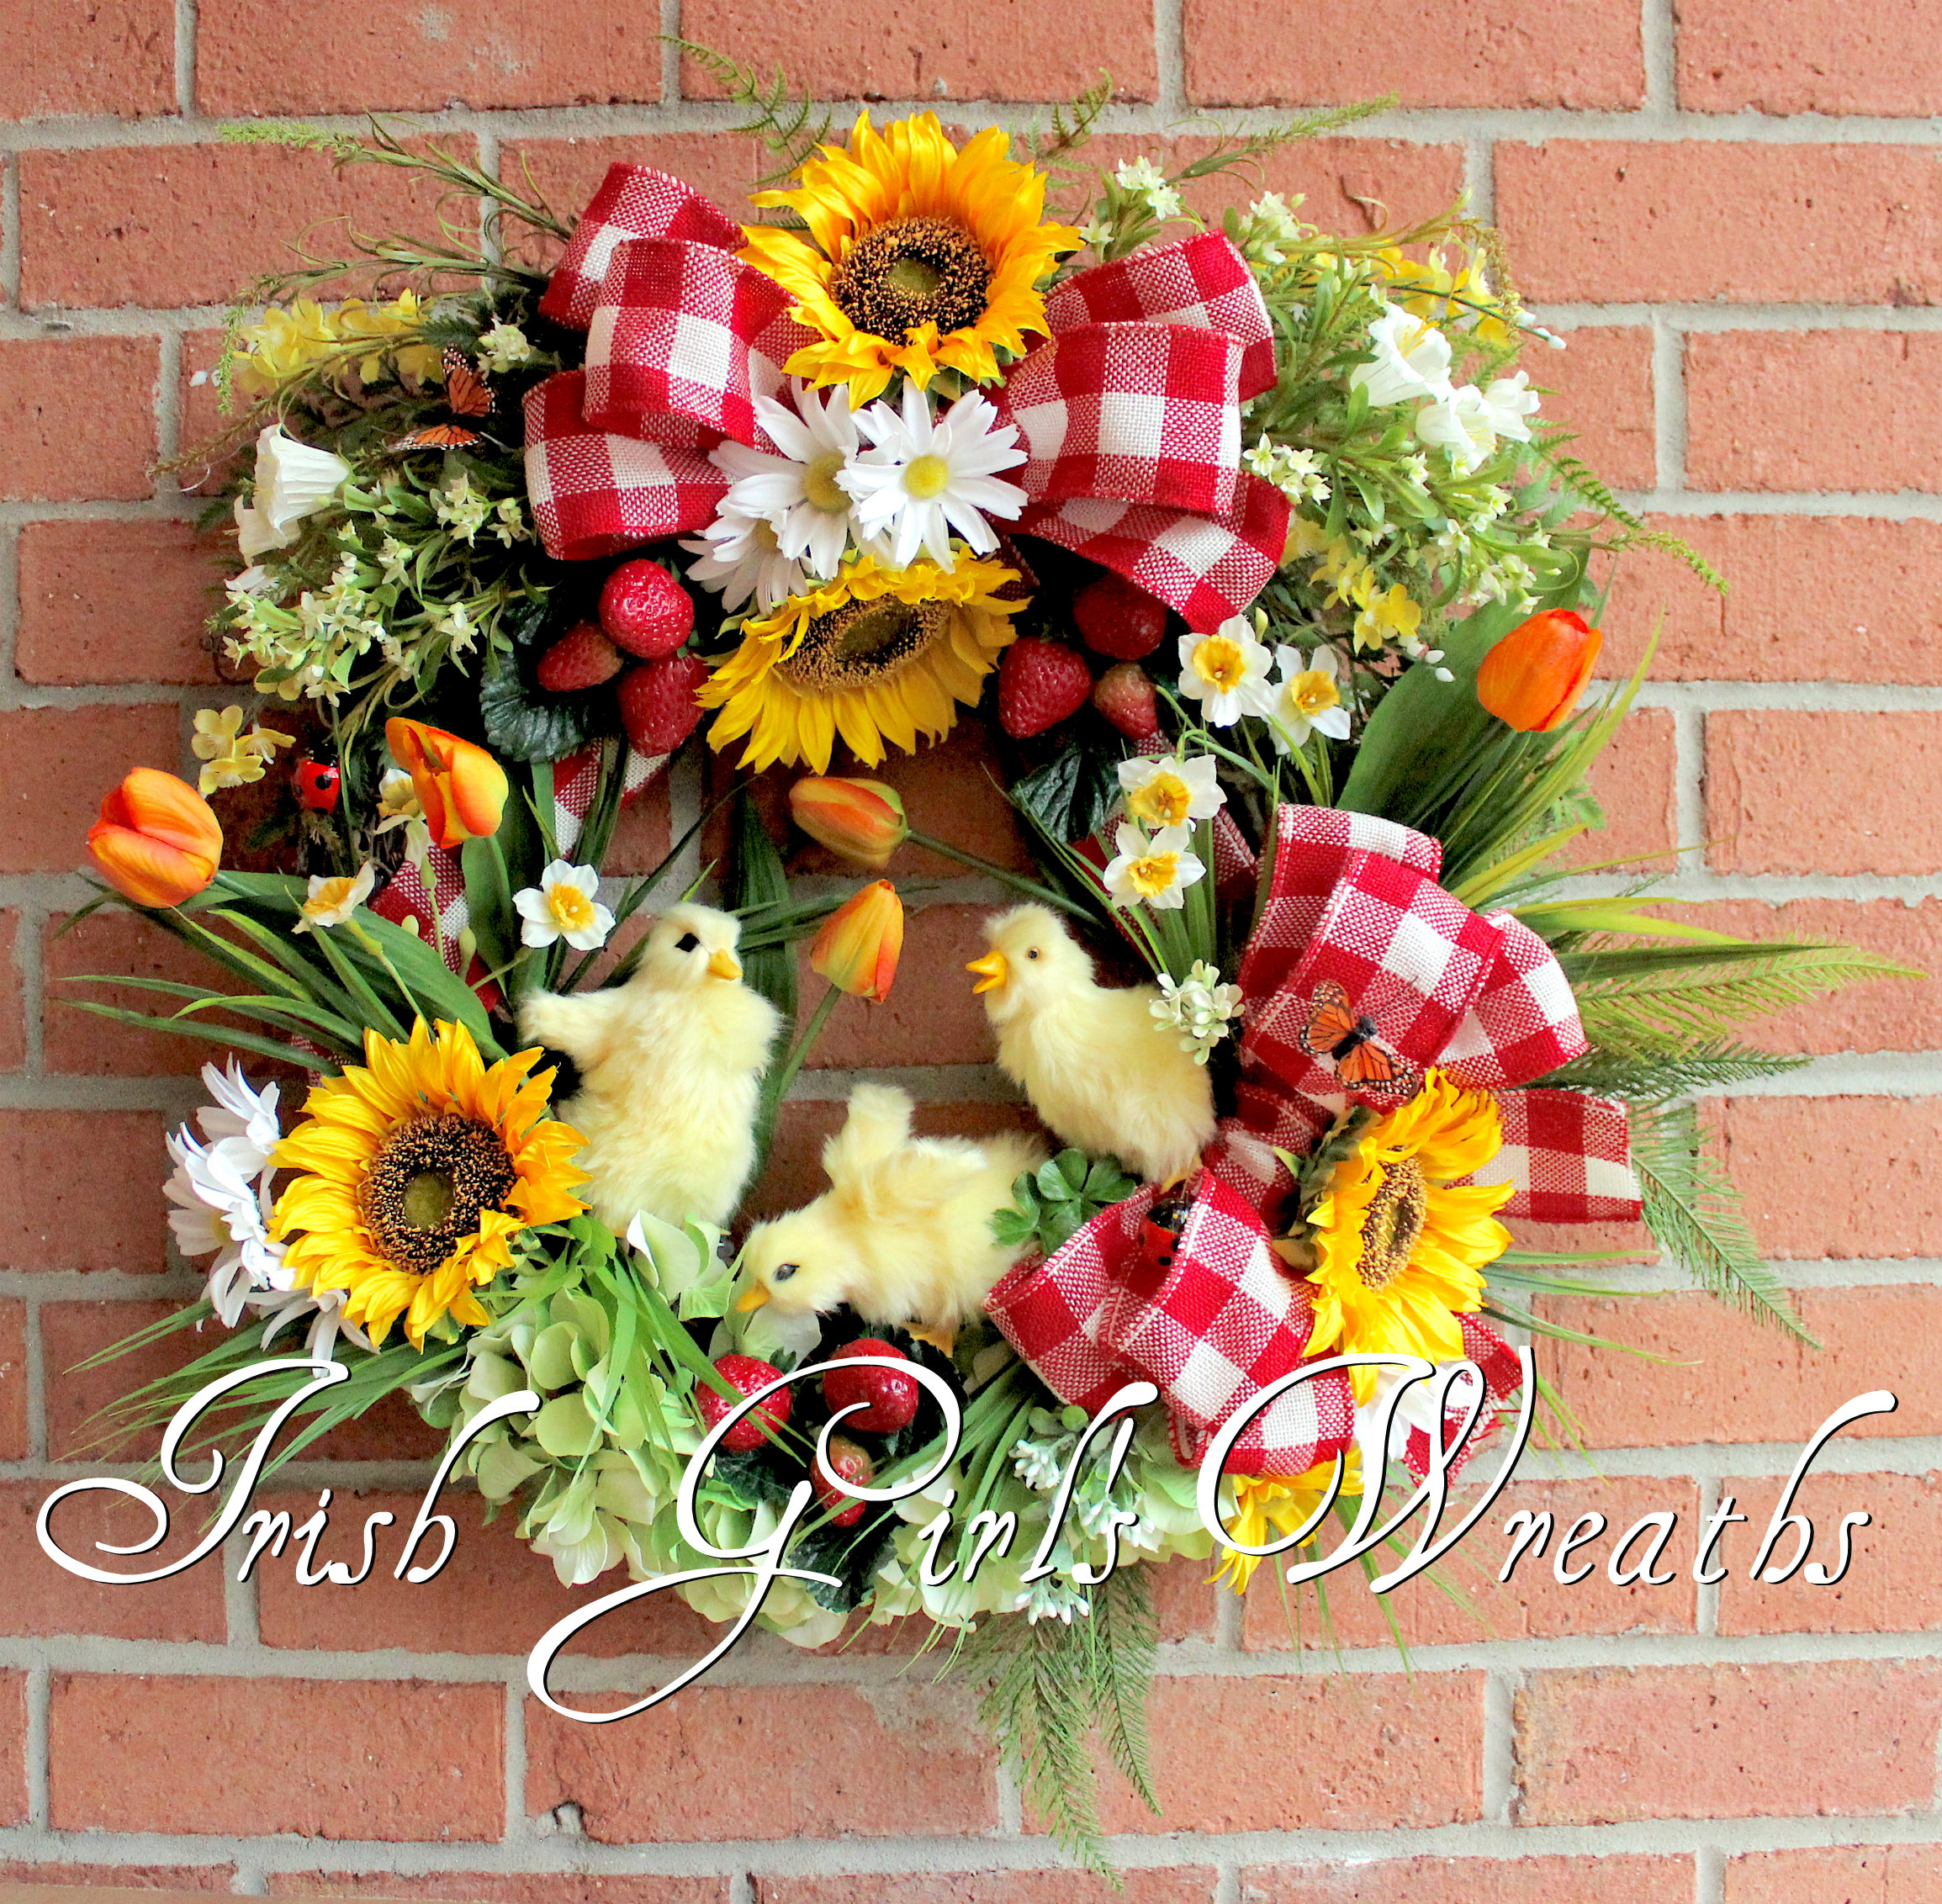 Spring Ducklings on the Farm Wreath, Custom for Claire